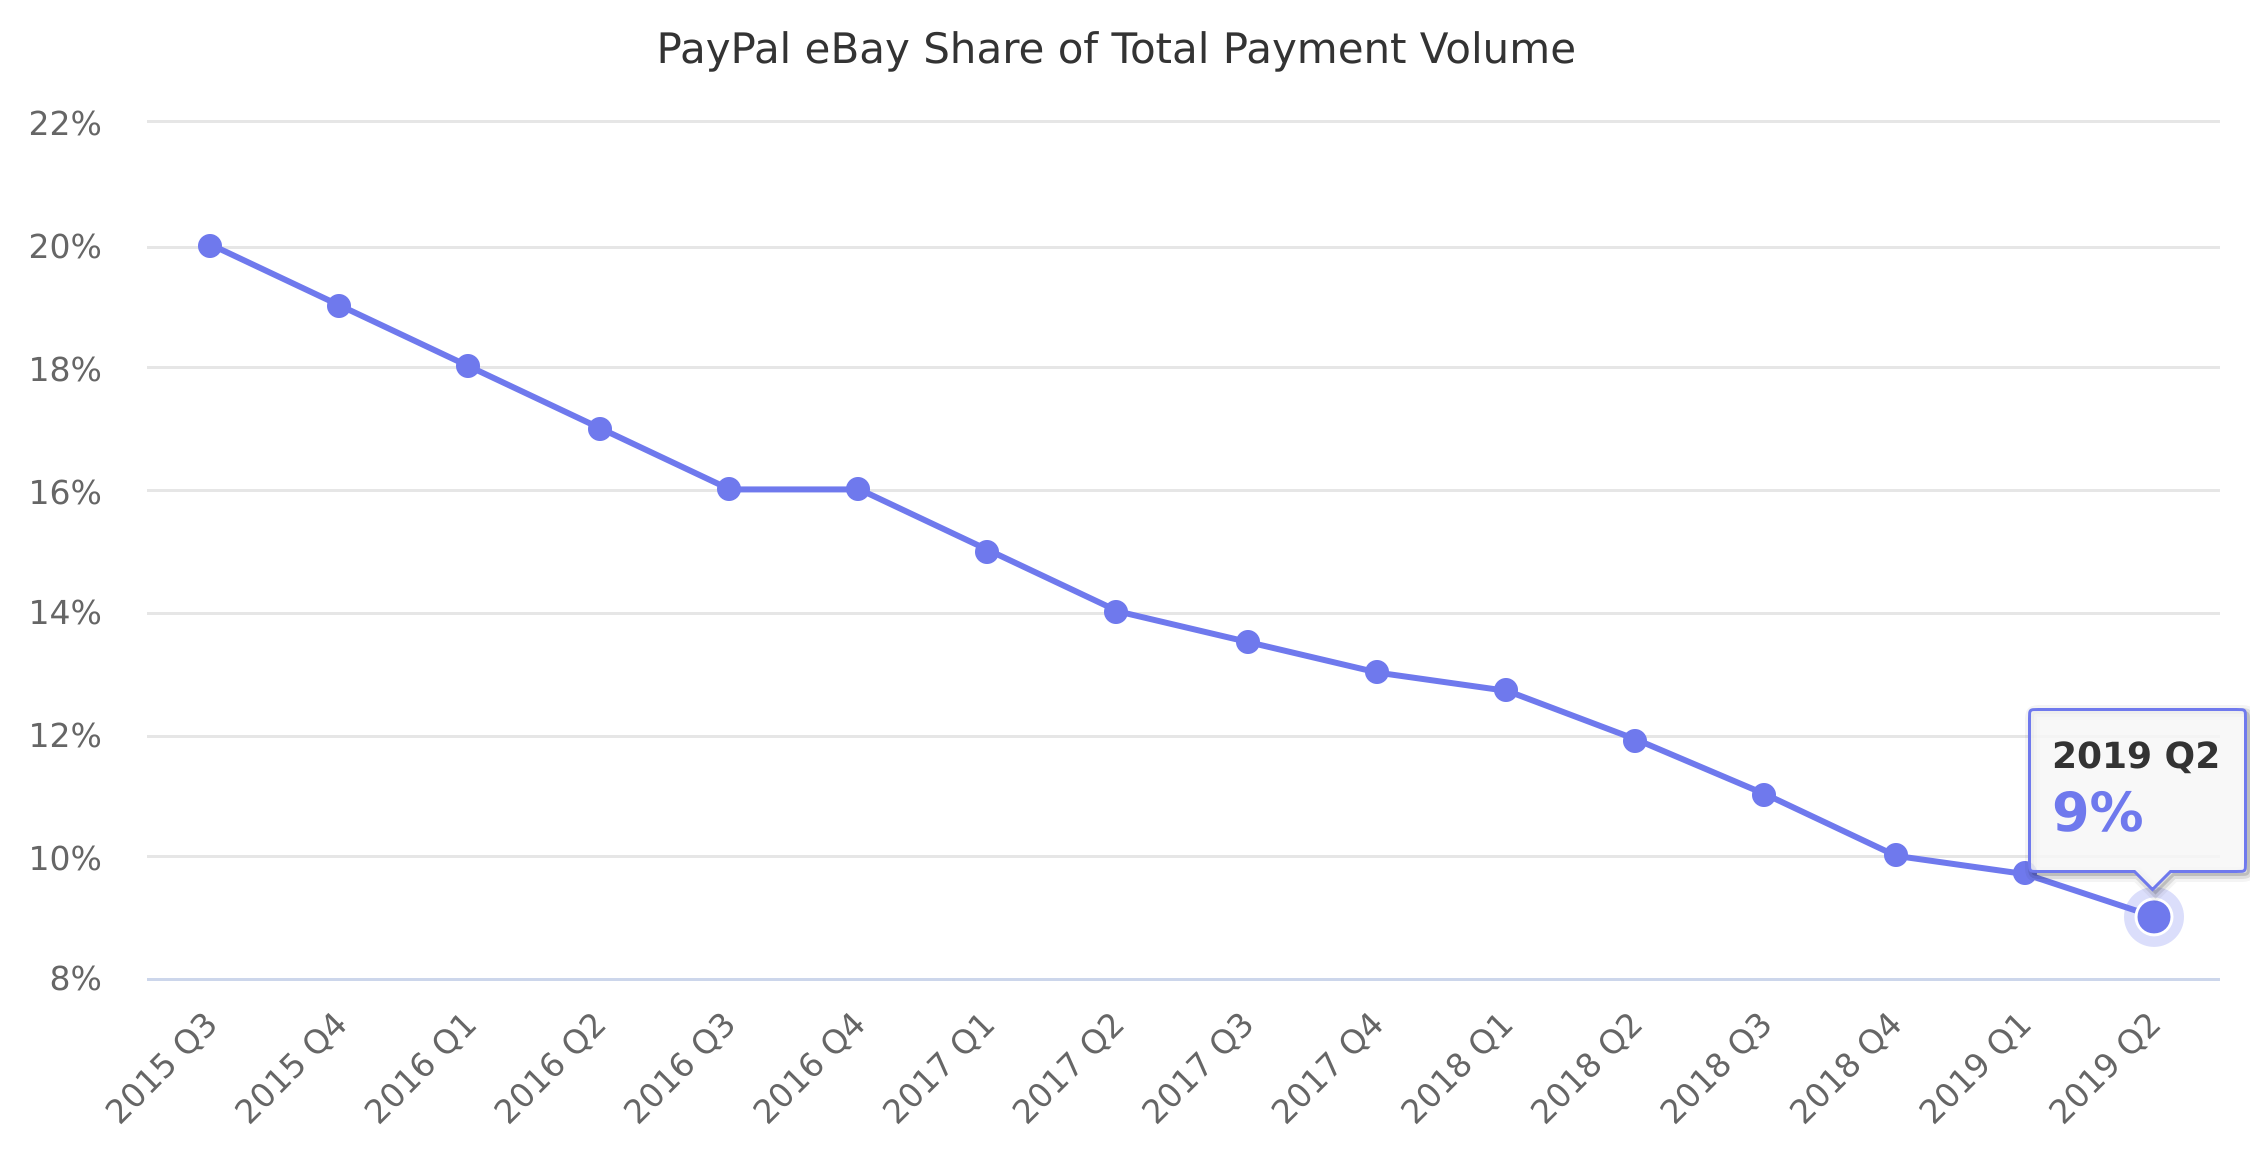 PayPal eBay Share of Total Payment Volume